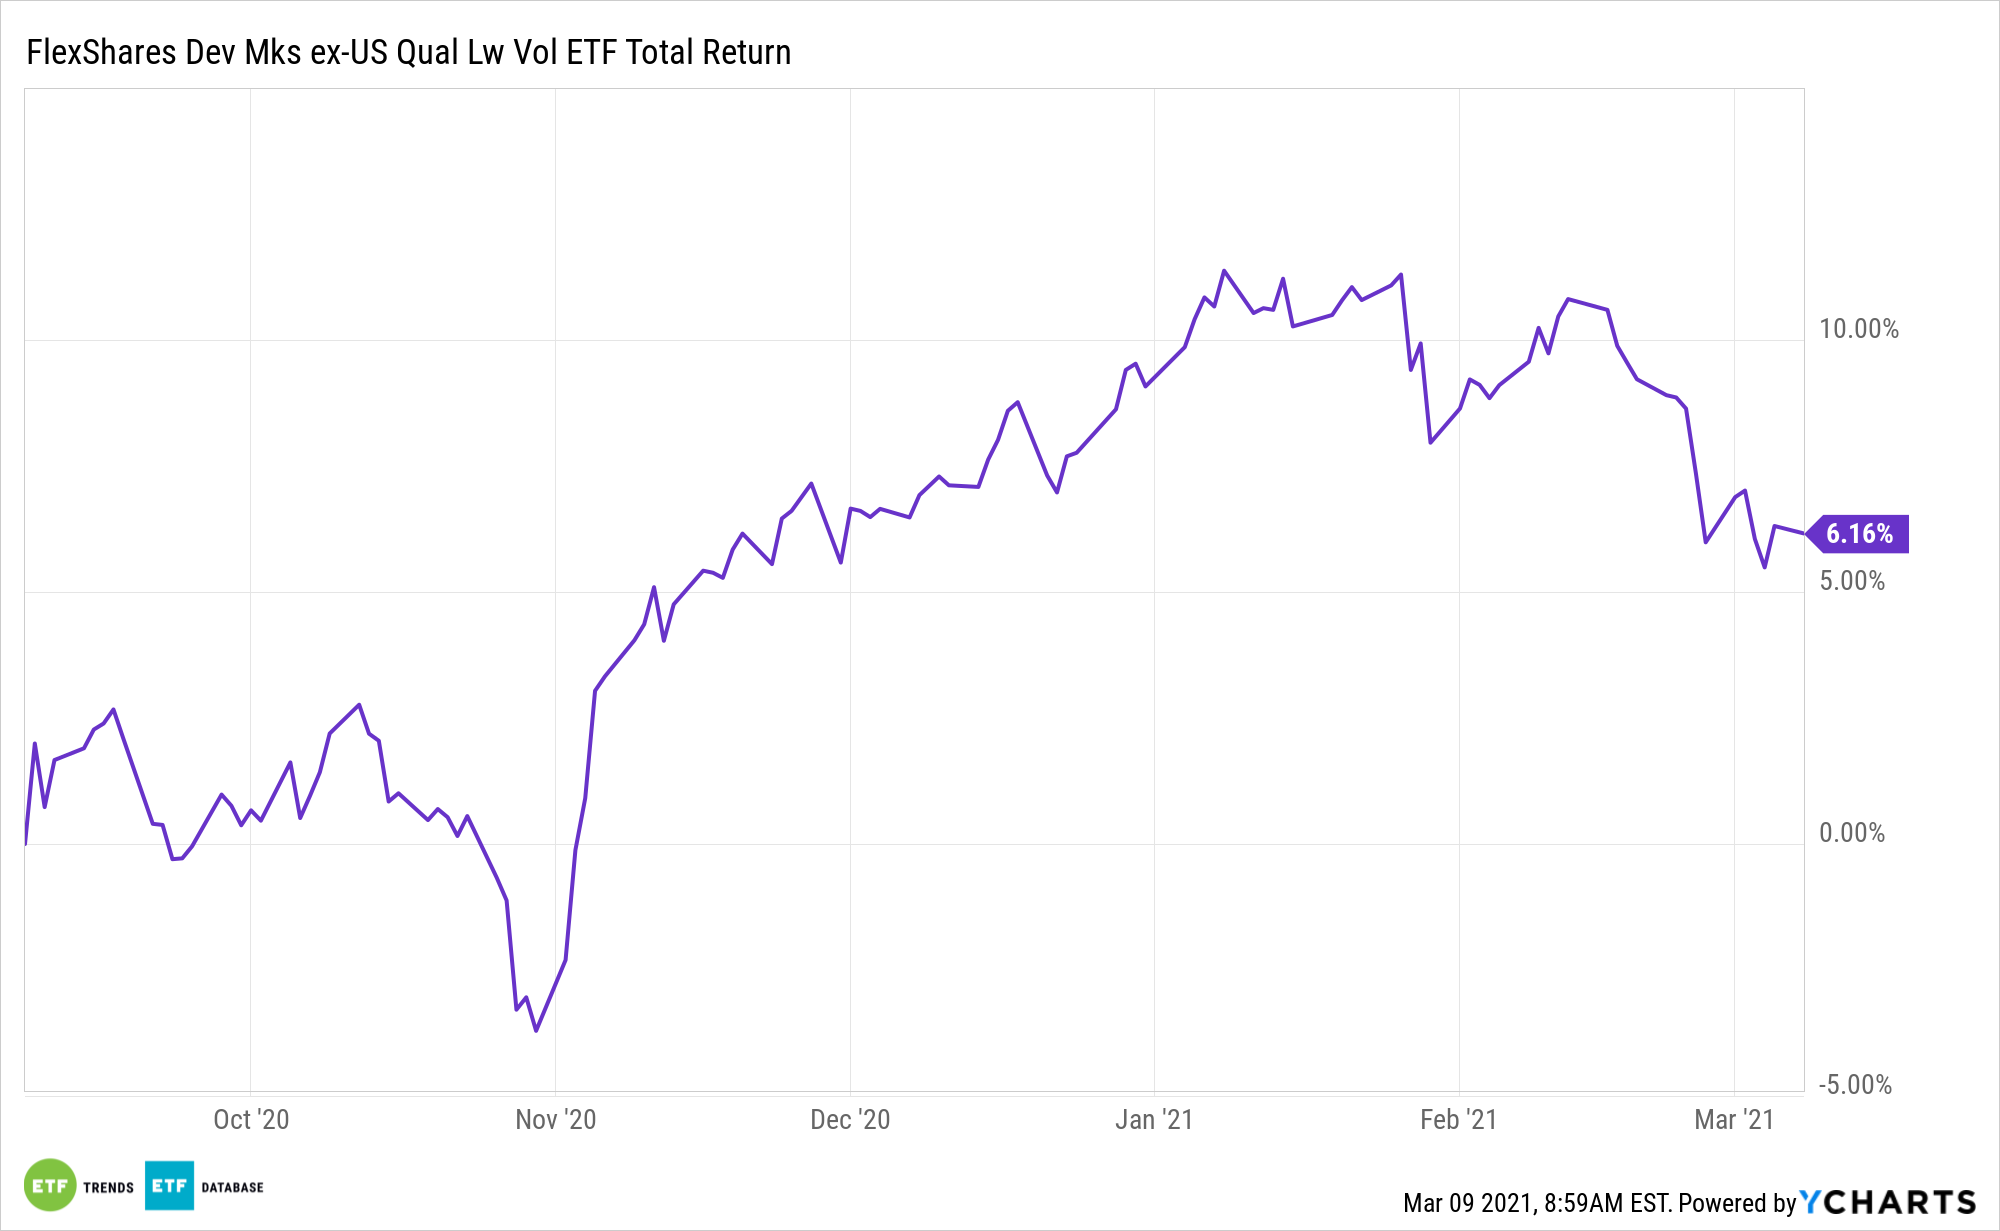 QLVD 6 Month Total Performance